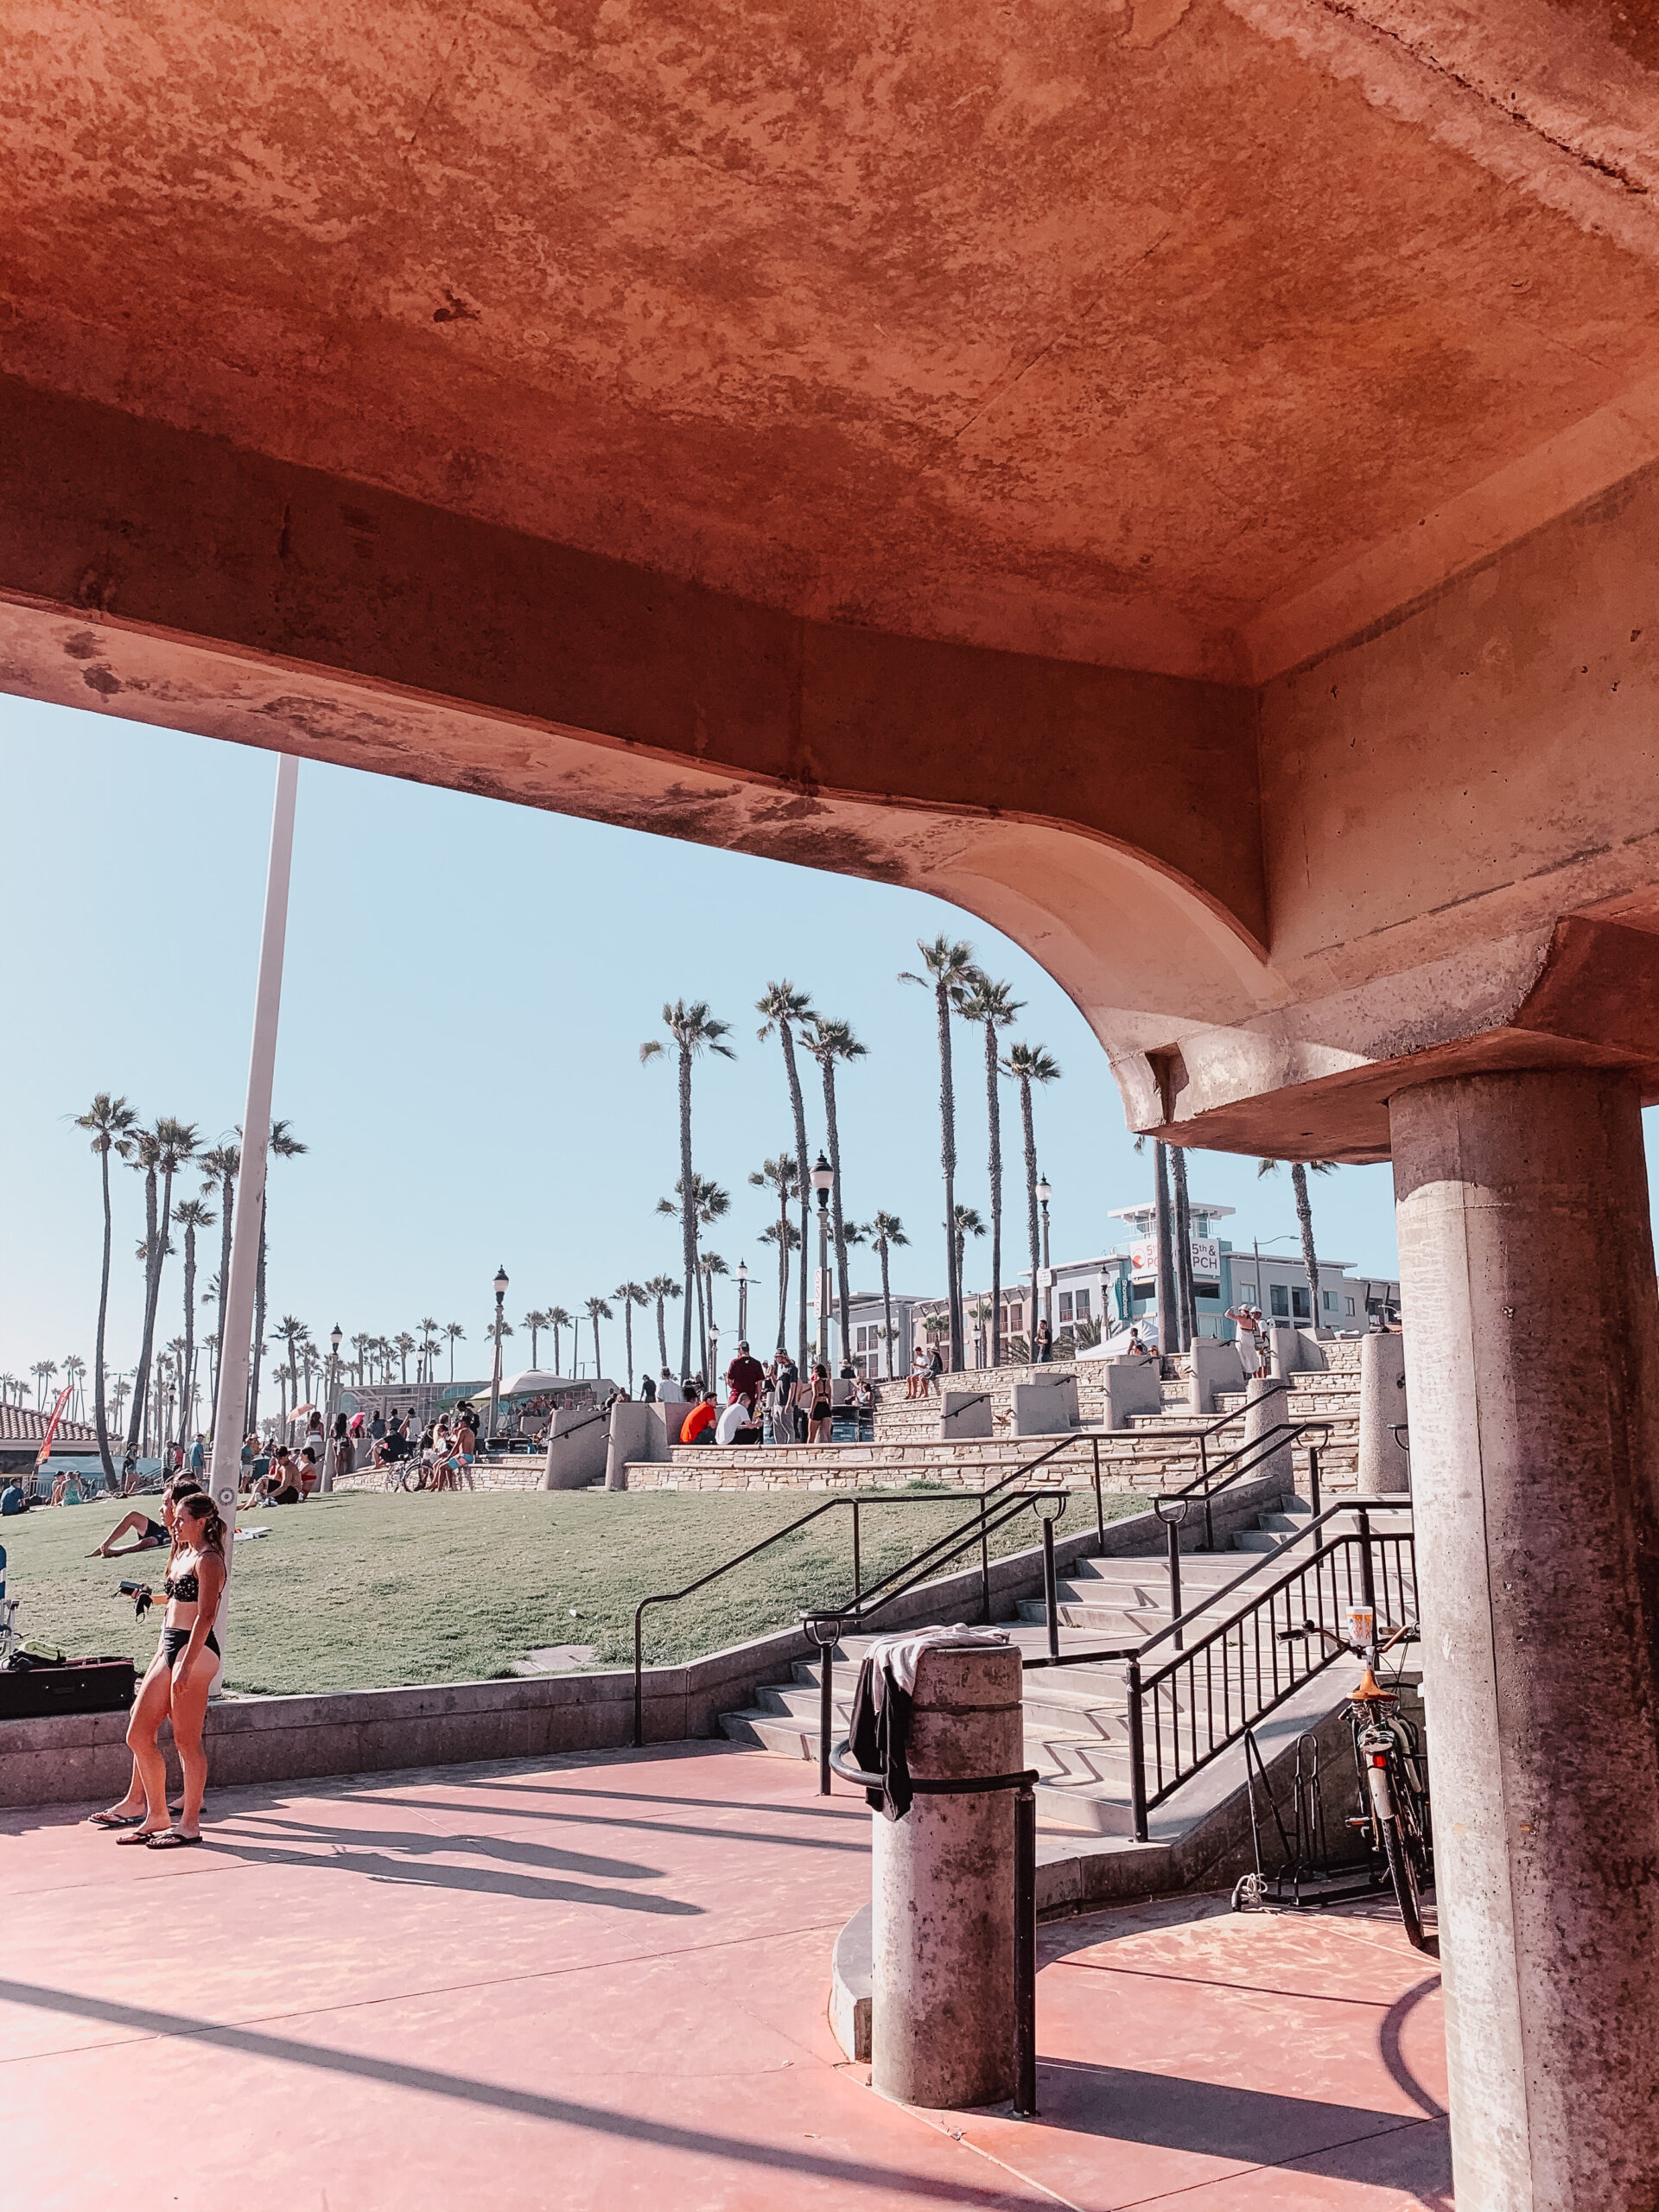 pslilyboutique-on-instagram-huntington-beach-pier-palm-trees-IMG_1092